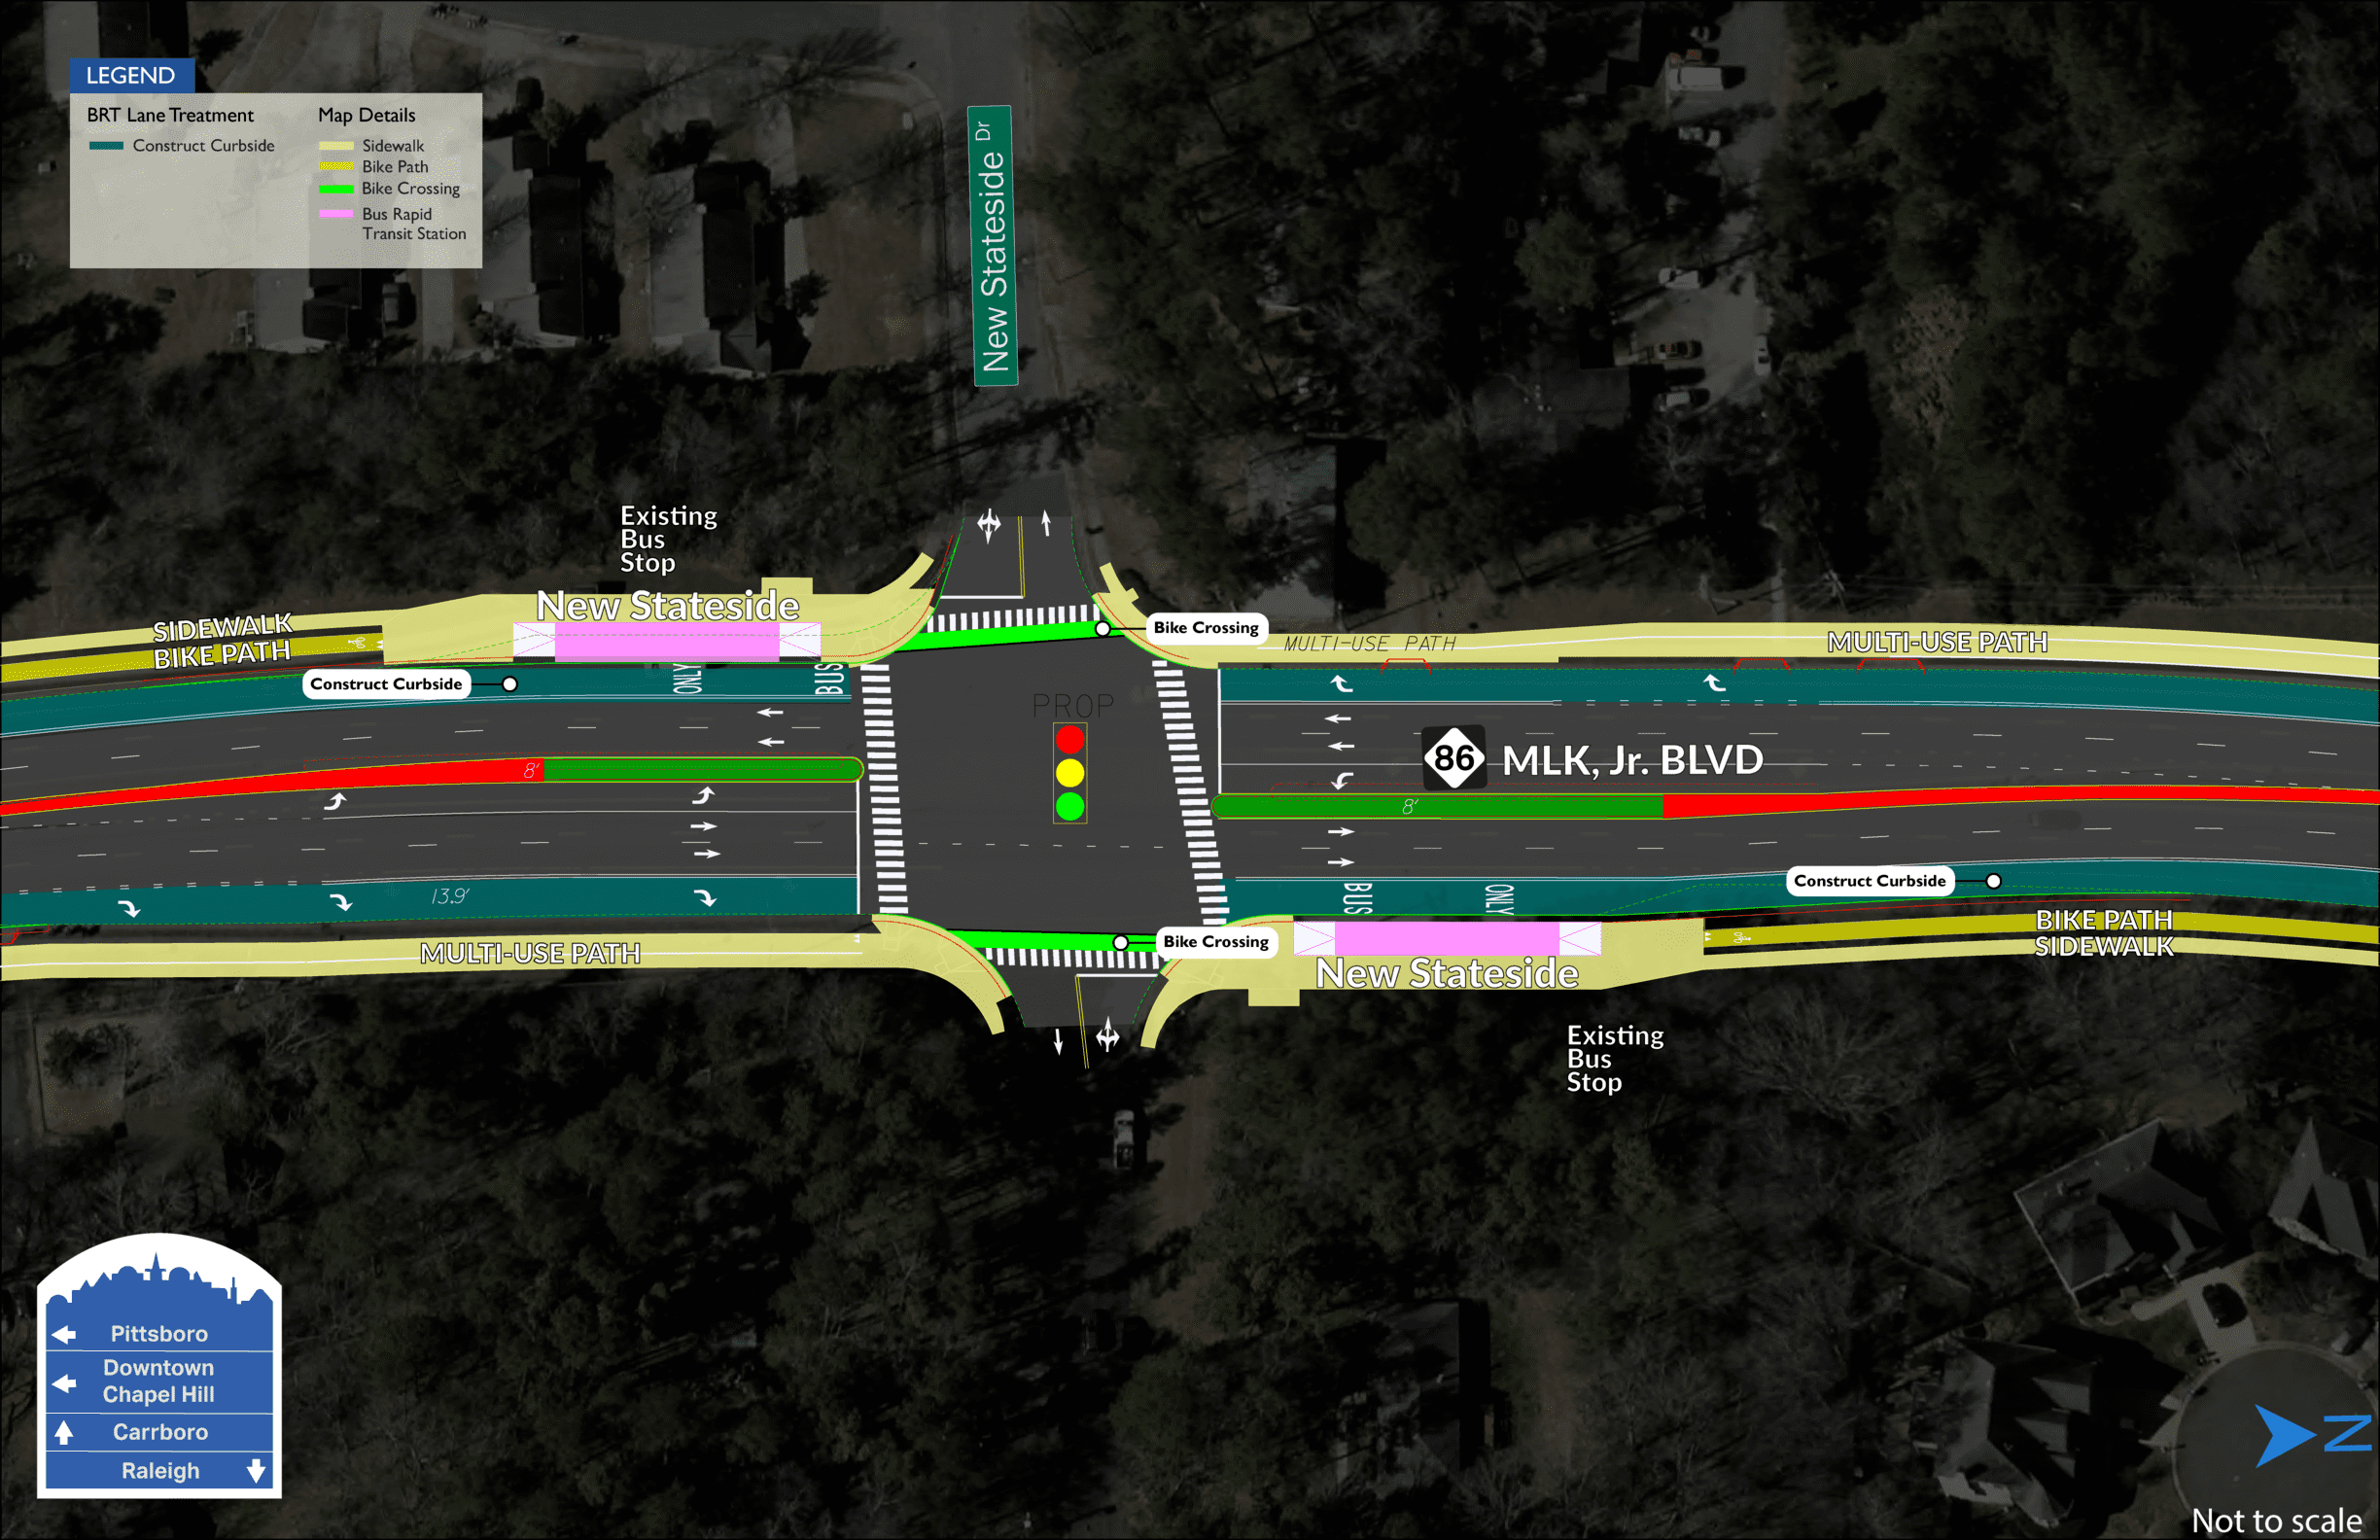 New Stateside BRT map showing two stations on both sides of MLK Jr. Boulevard, divided by New Stateside Drive.